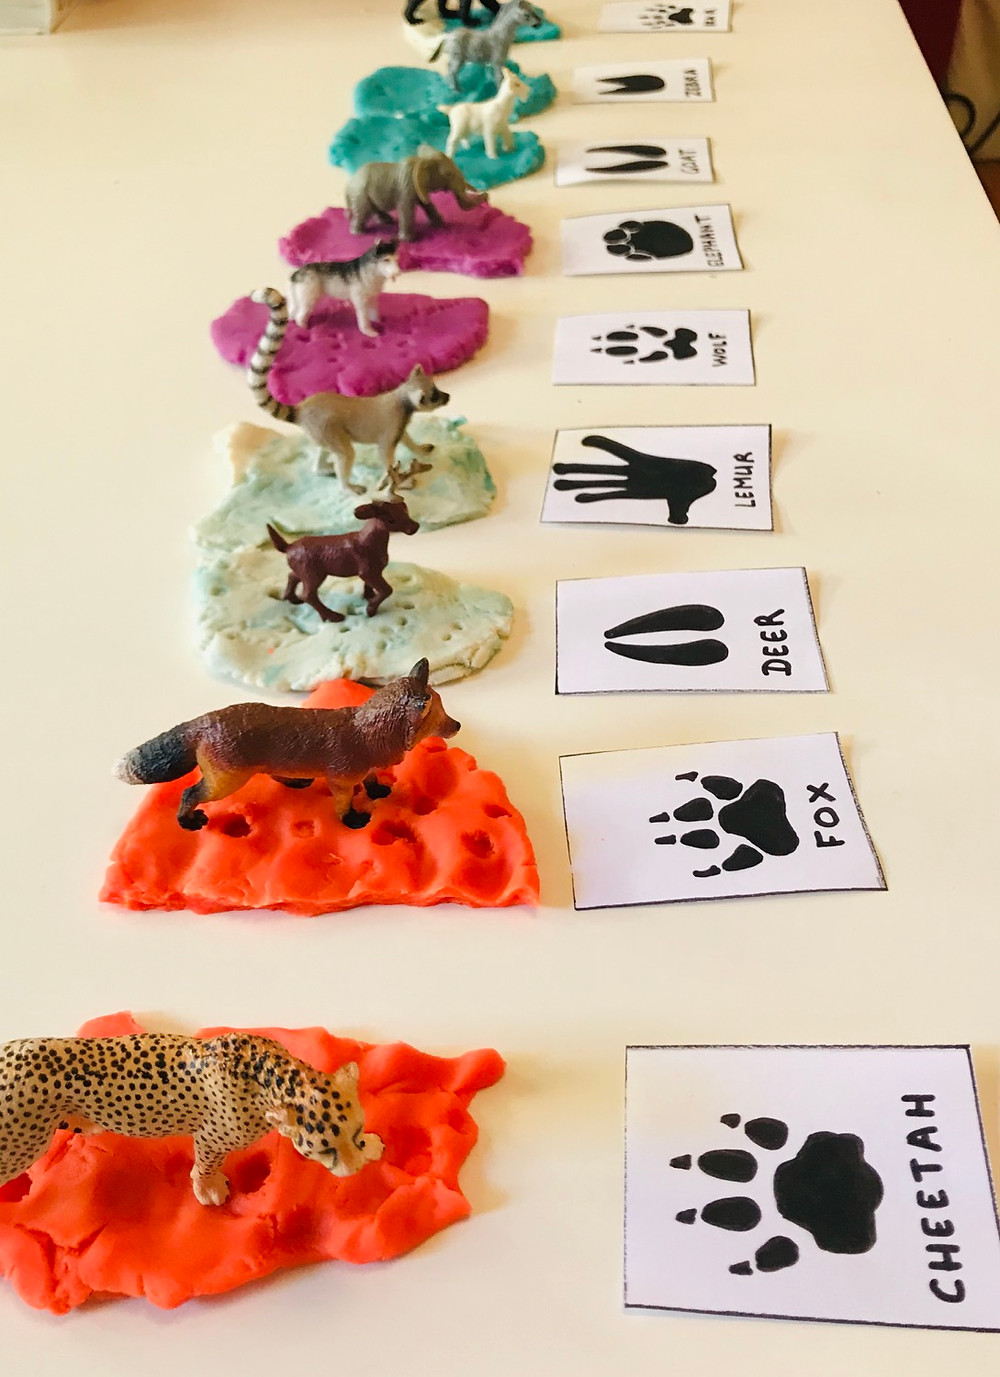 Animal toys and footprints